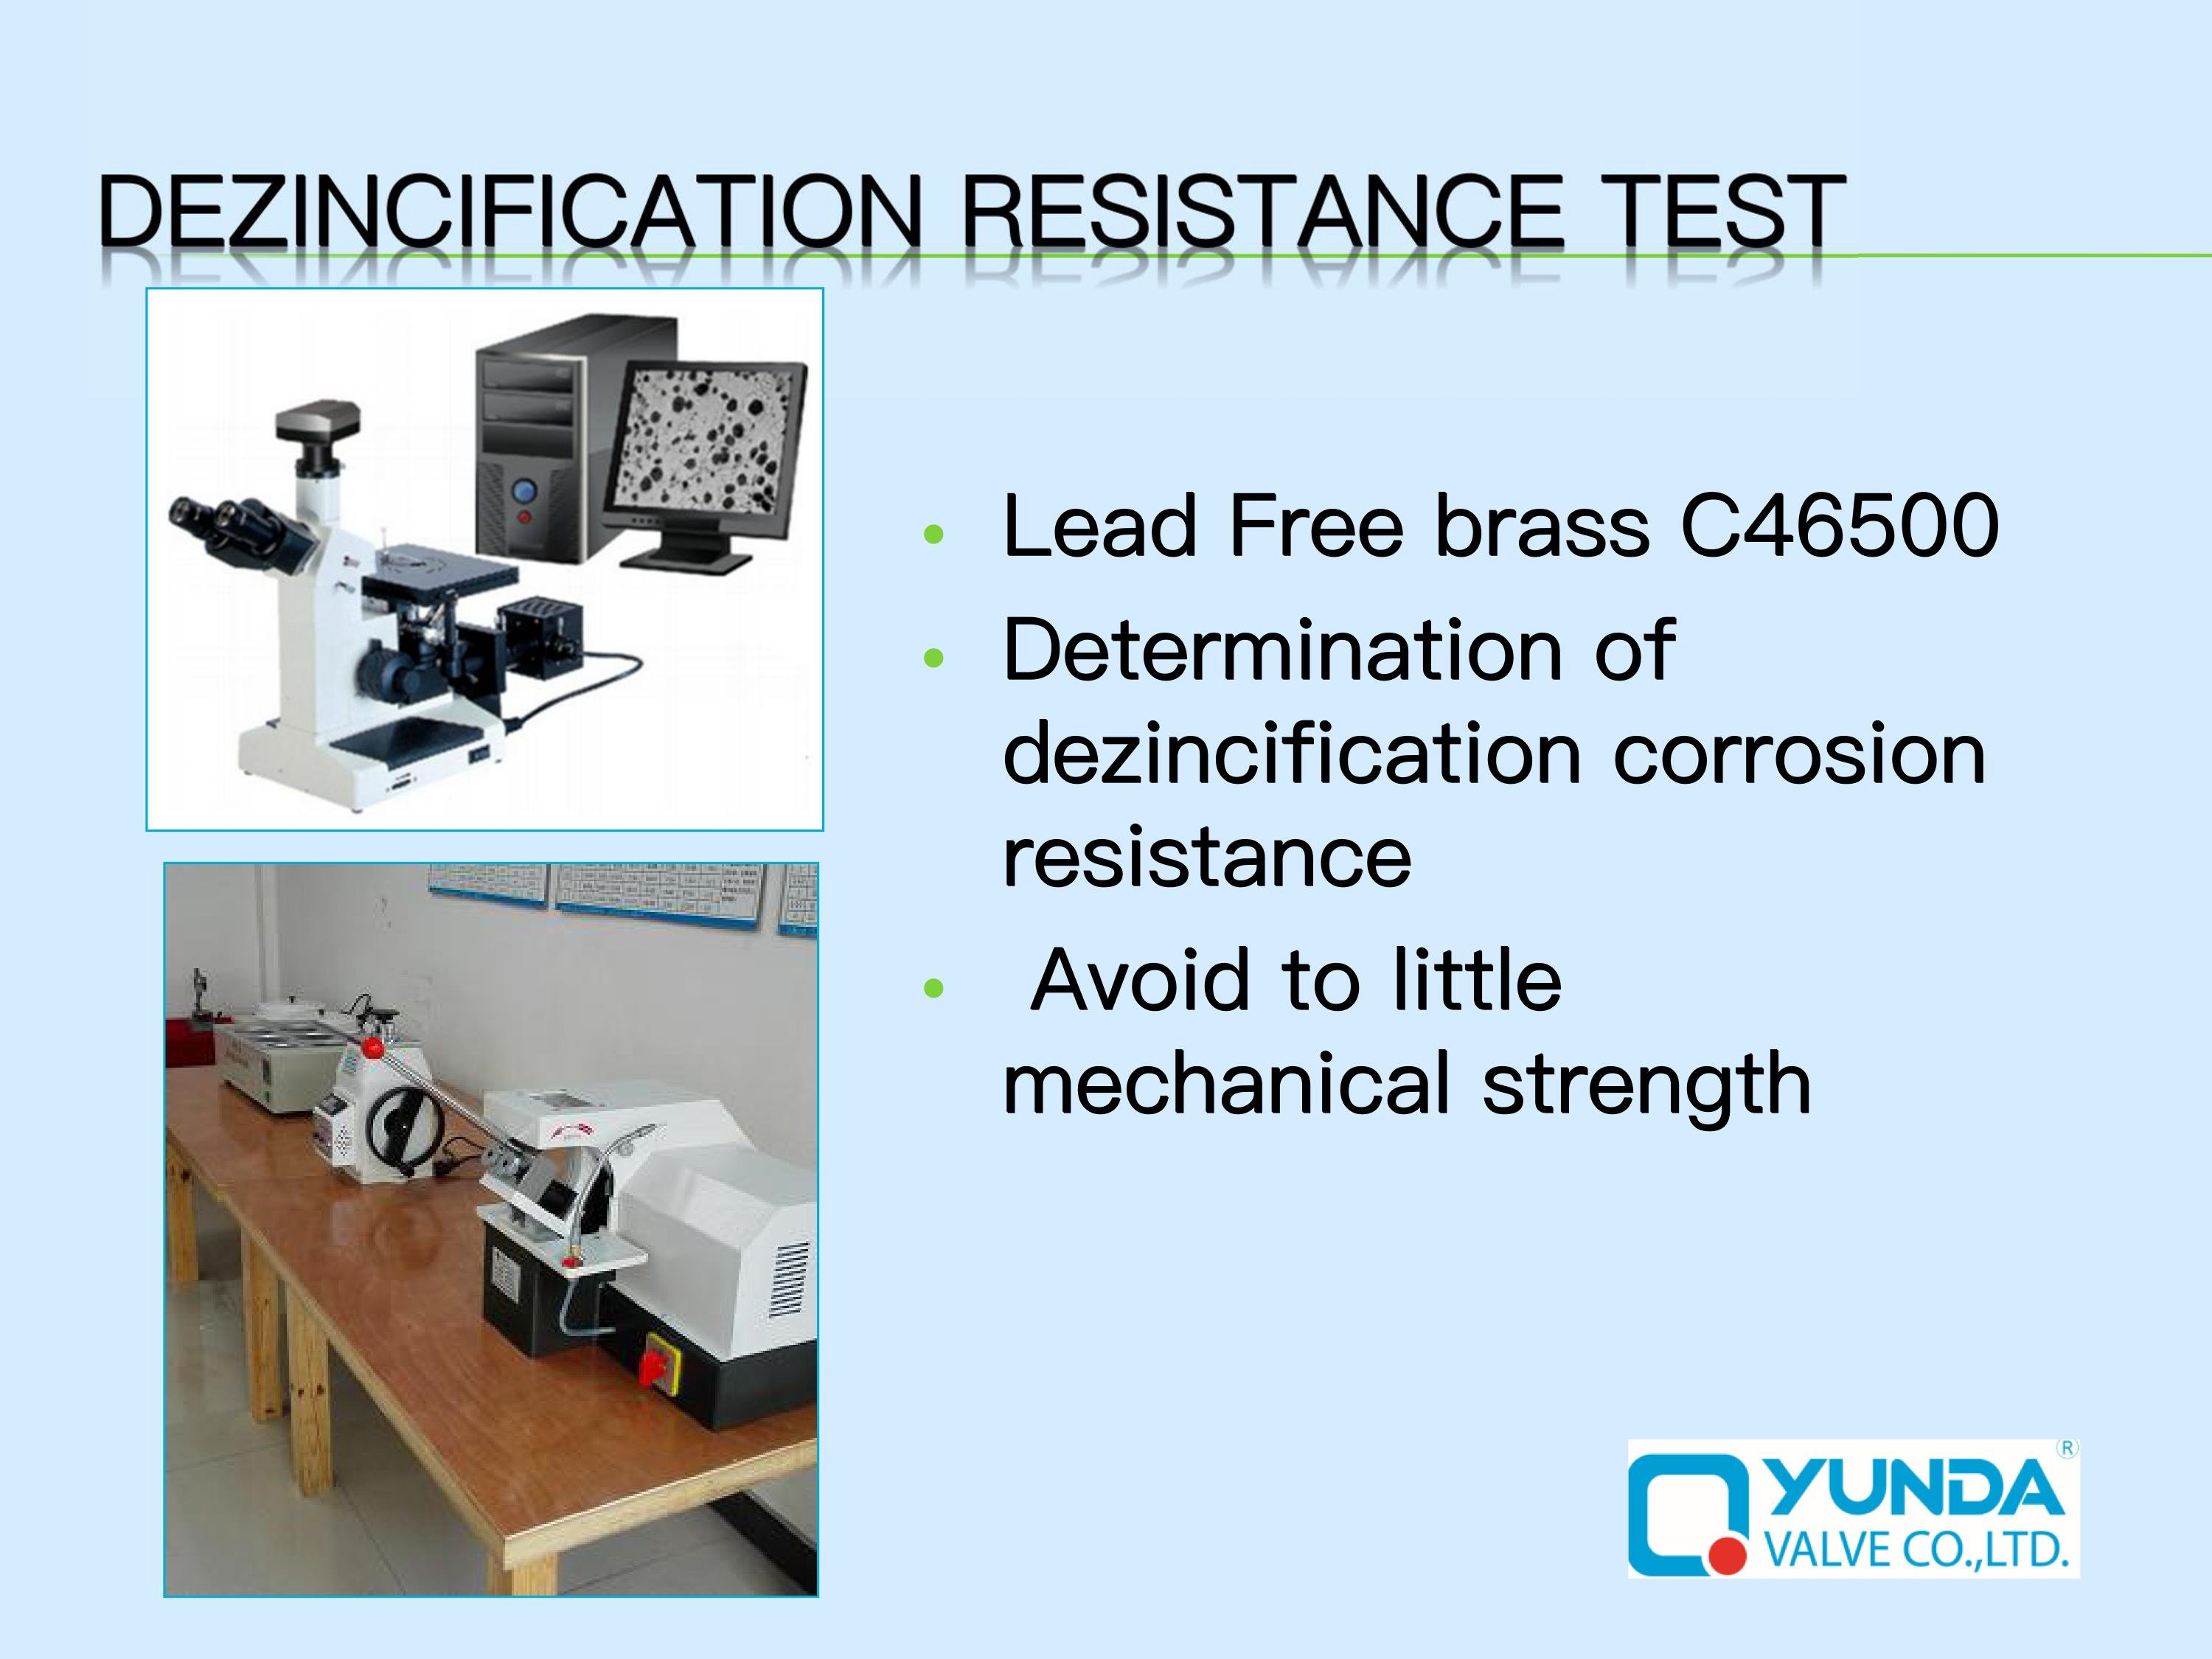 YUNDA Angle Valve and FIttings Lab & Test Equipments4